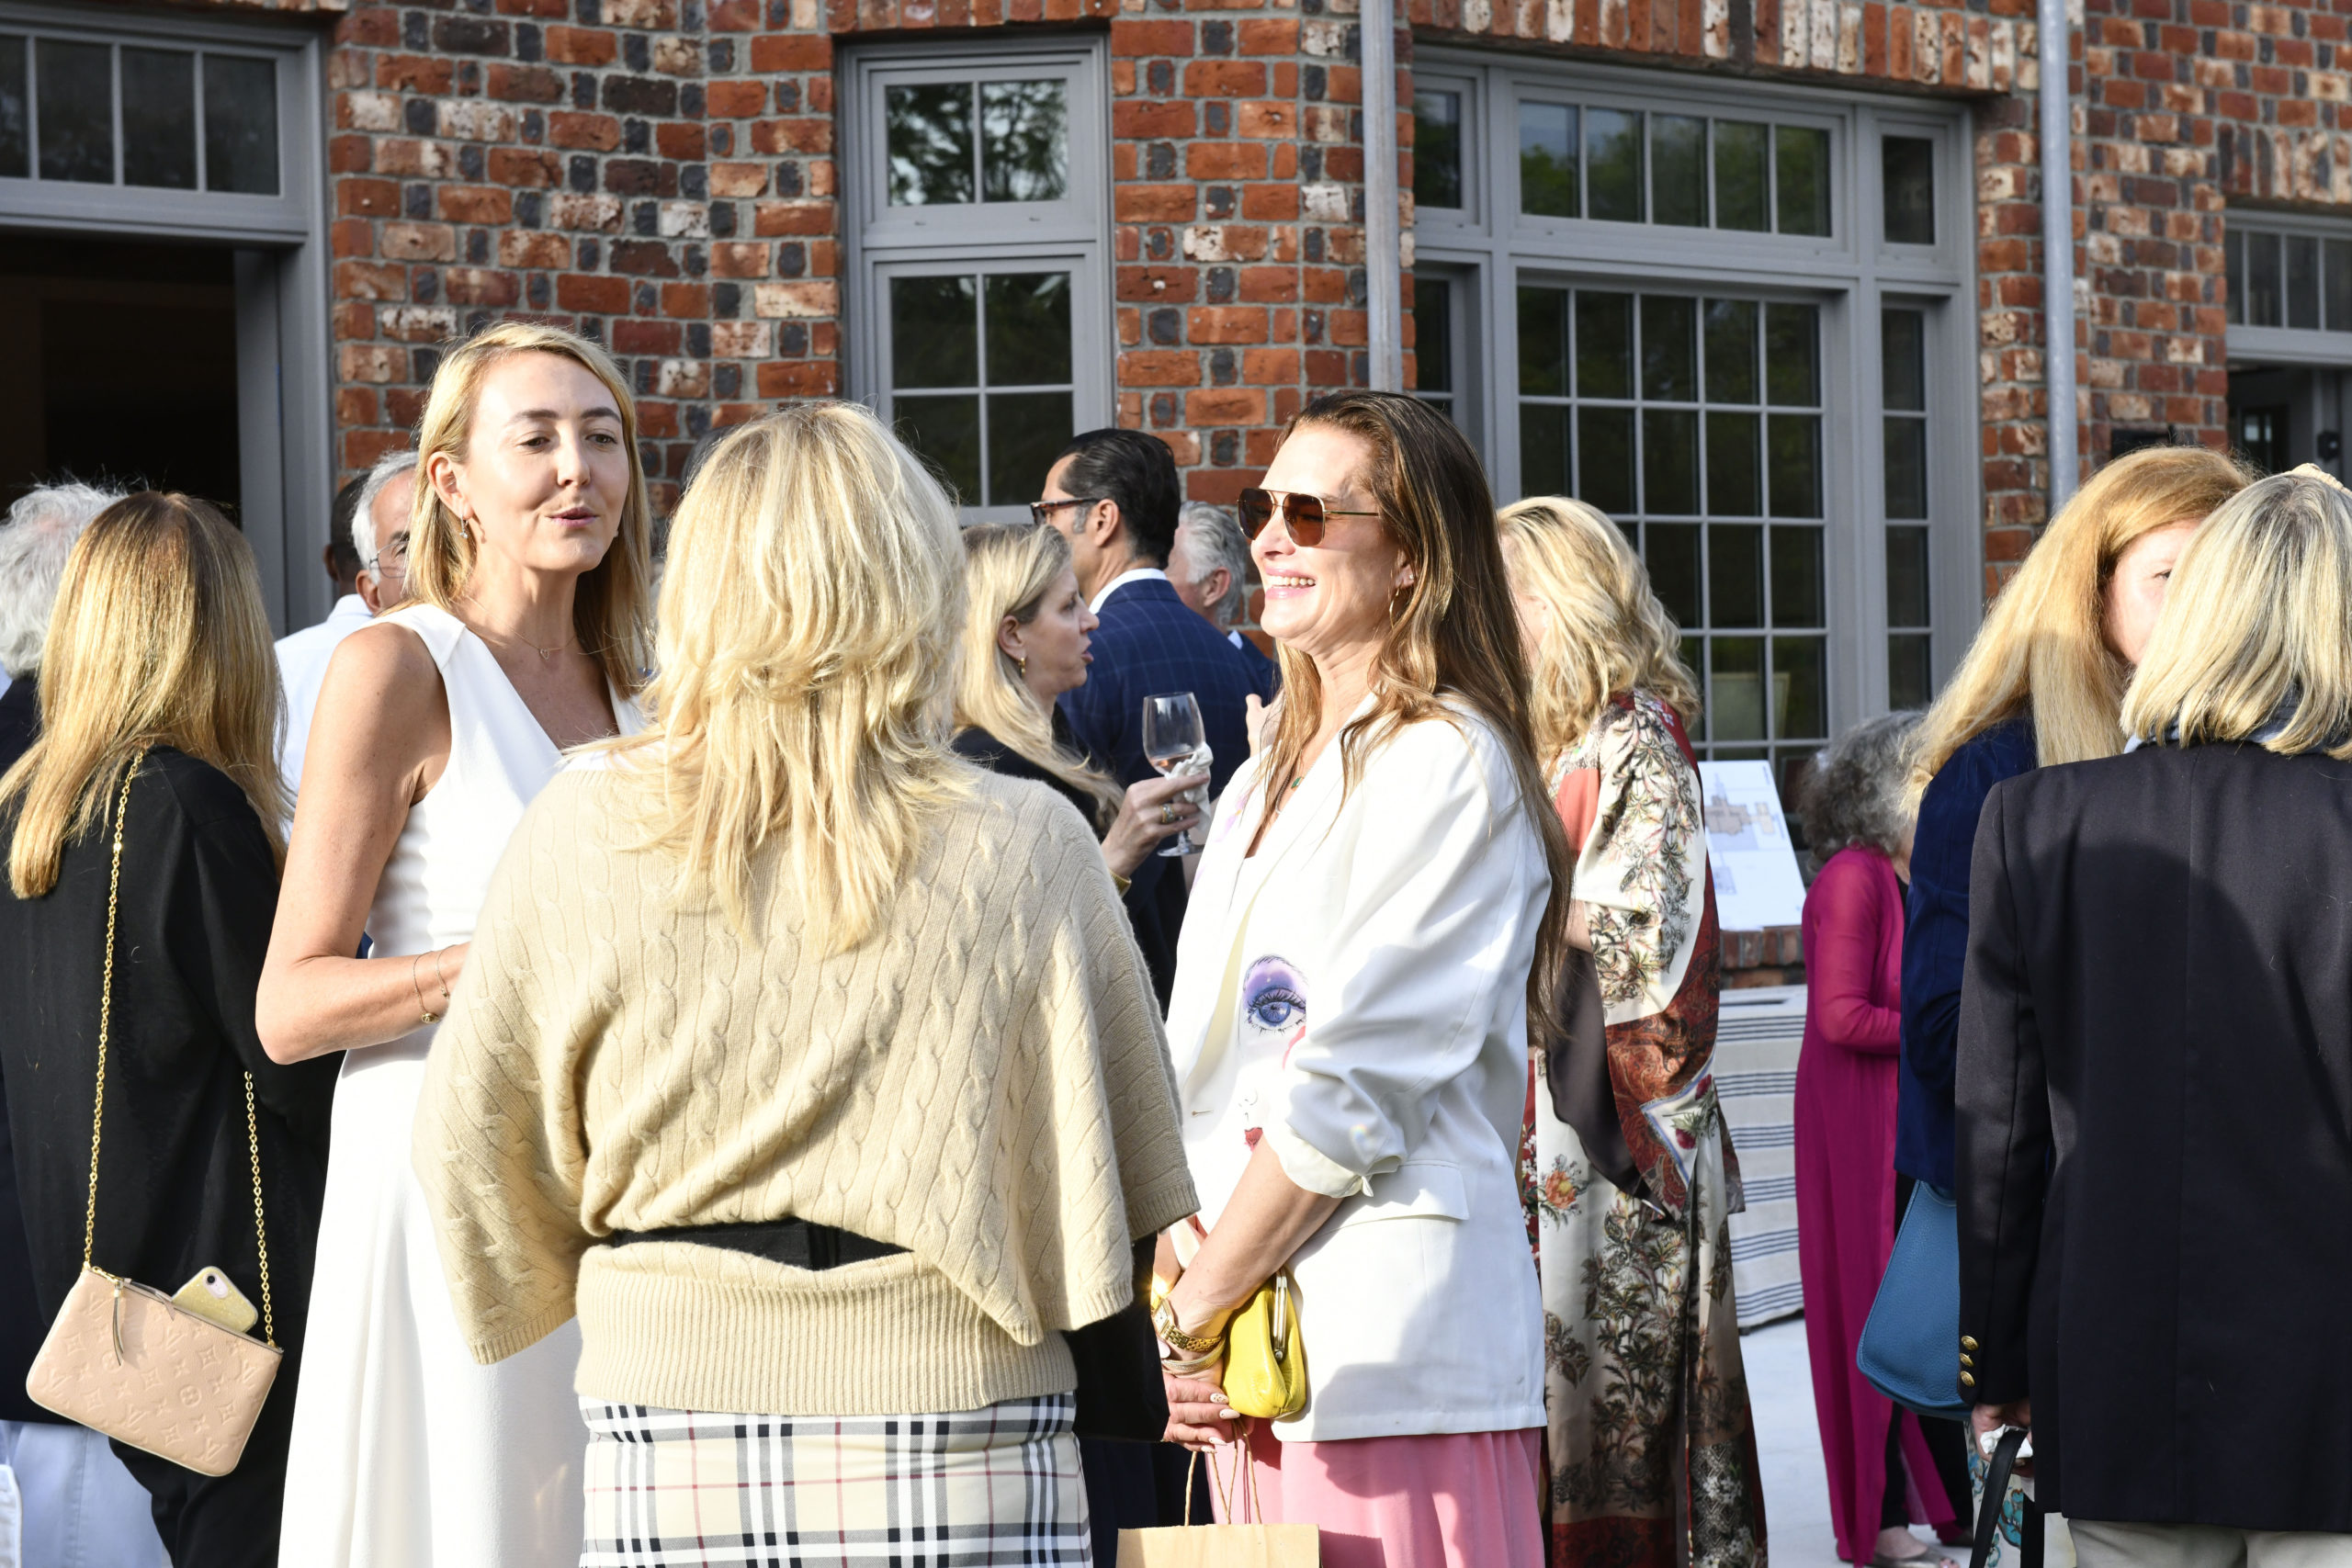 Local and celebrity guests, like, Brooke Shields, left, at the event at the newly restored Grosvenor Atterbury Estate in Southampton Village on June 12.  DANA SHAW